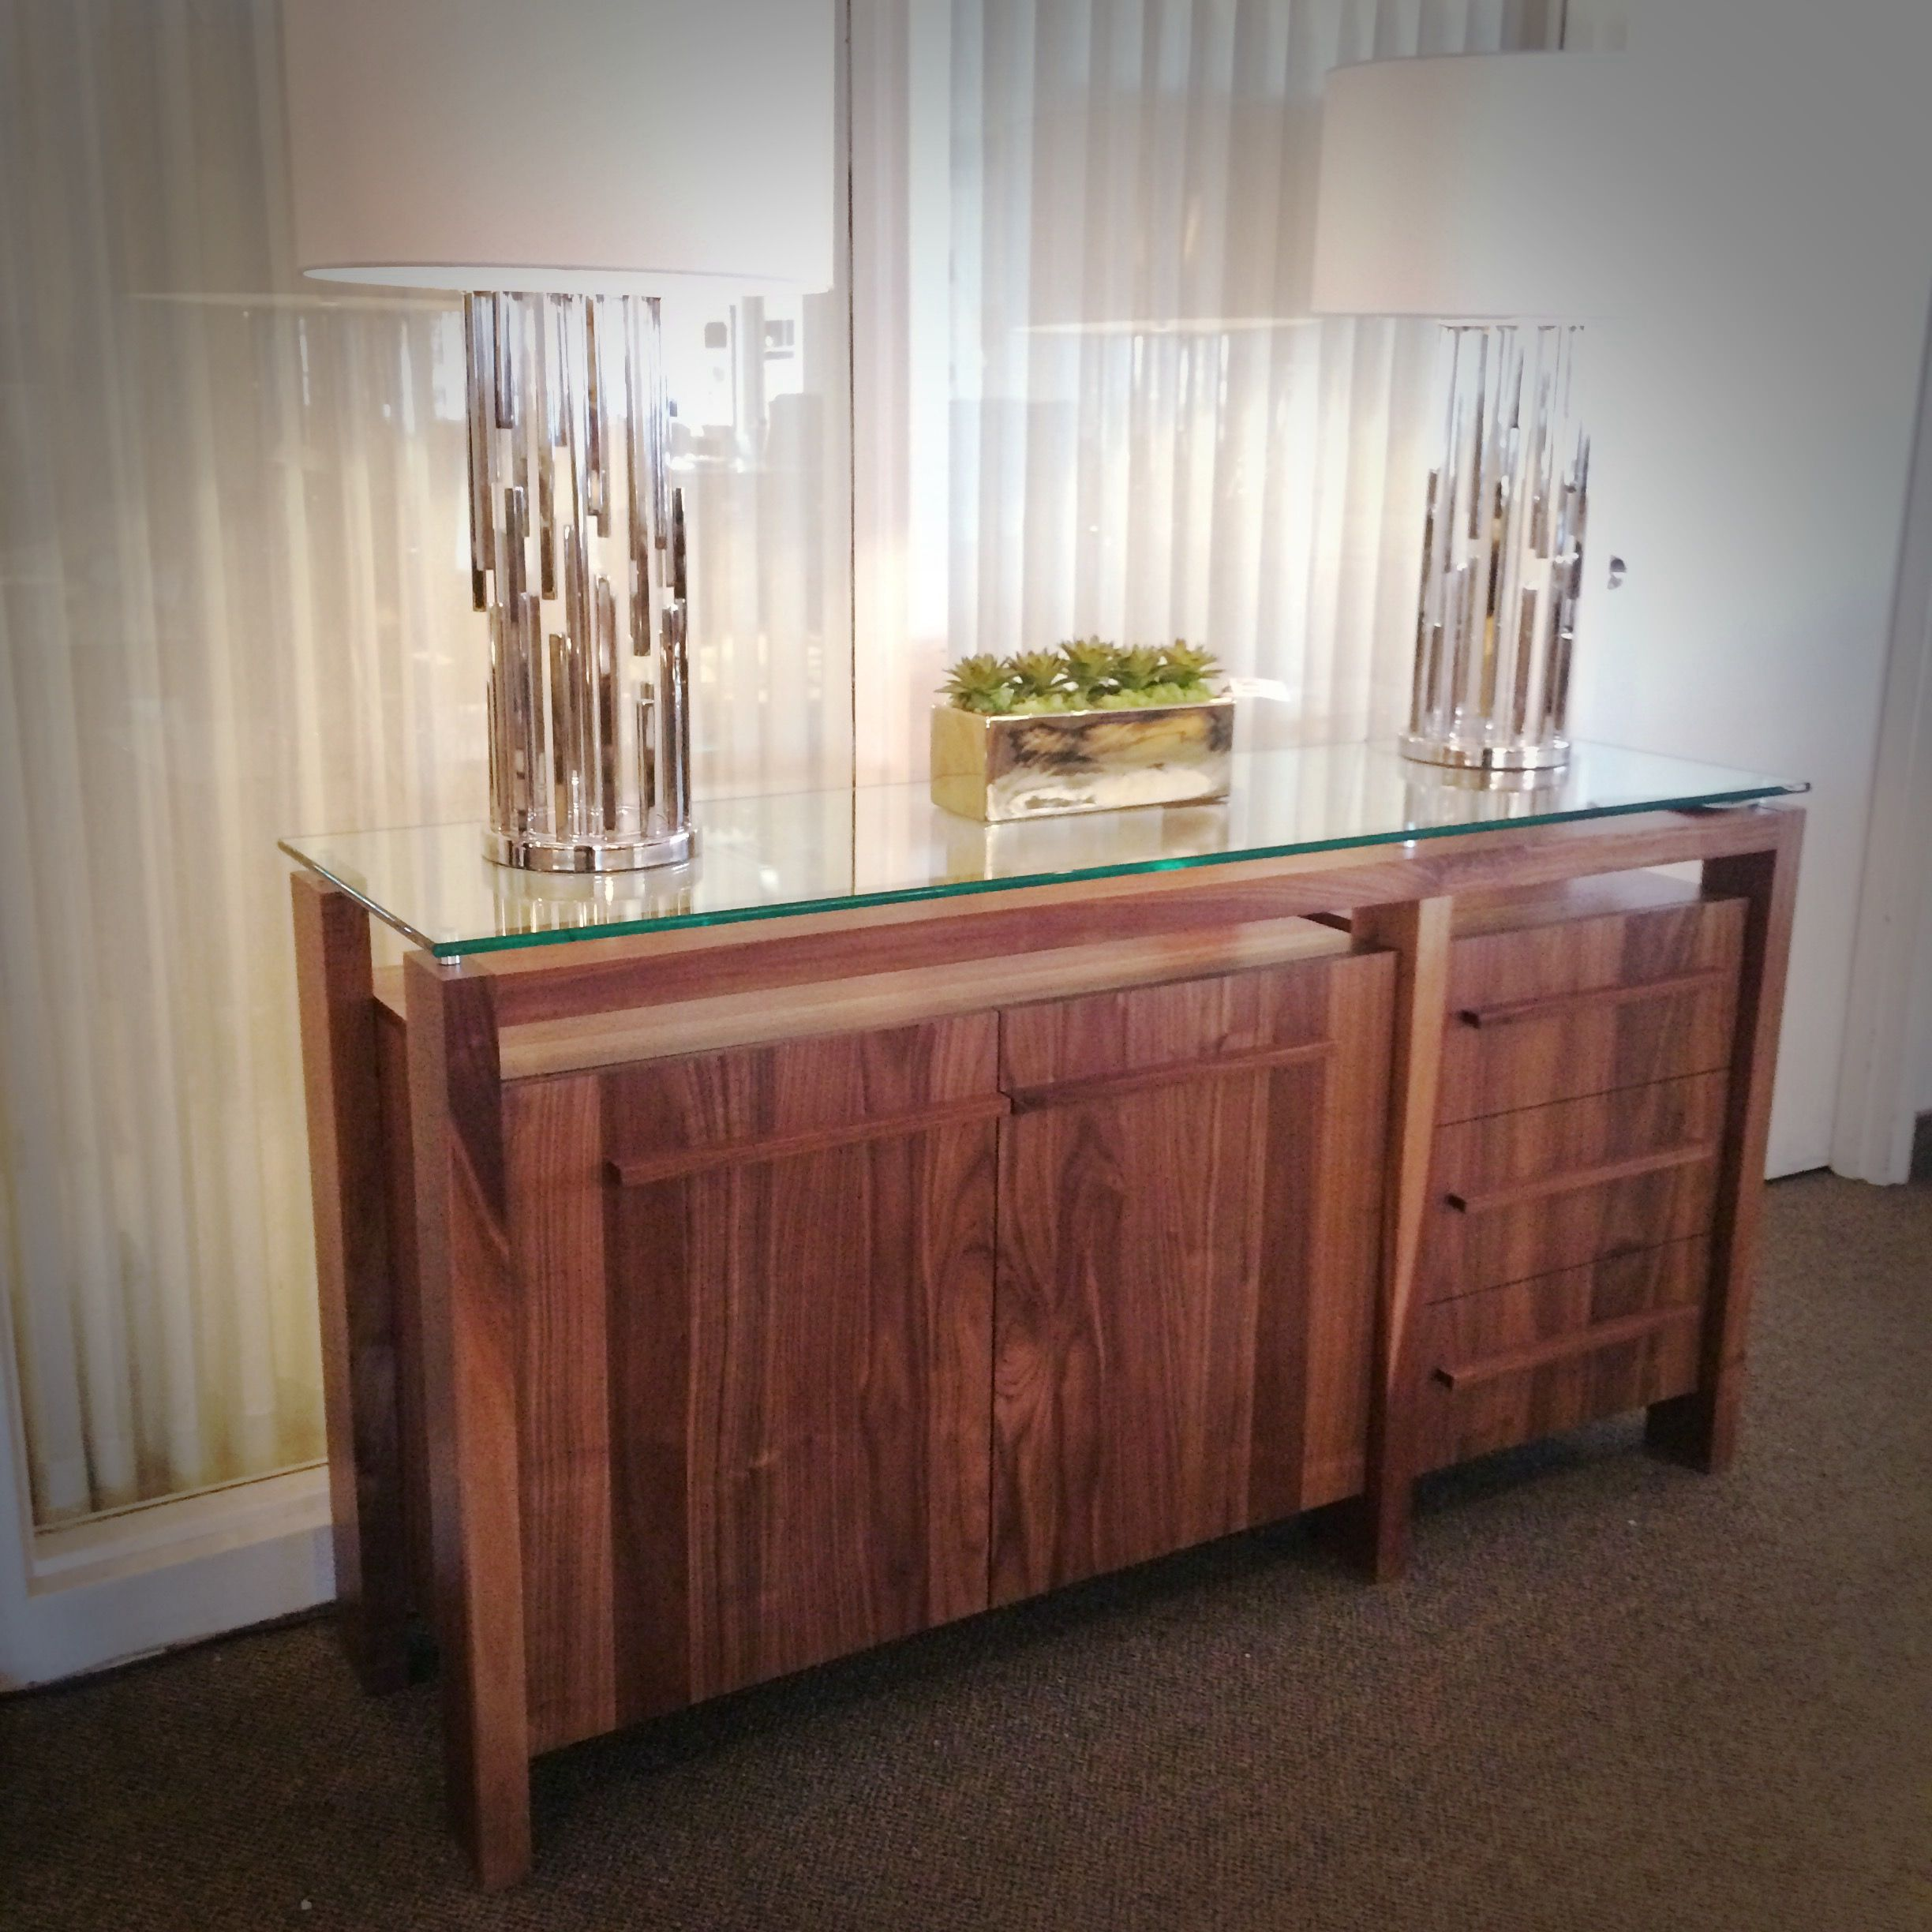 Canadian Made By VerBois Furniture ZIG Buffet In Natural Walnut Available A Variety Dining Room